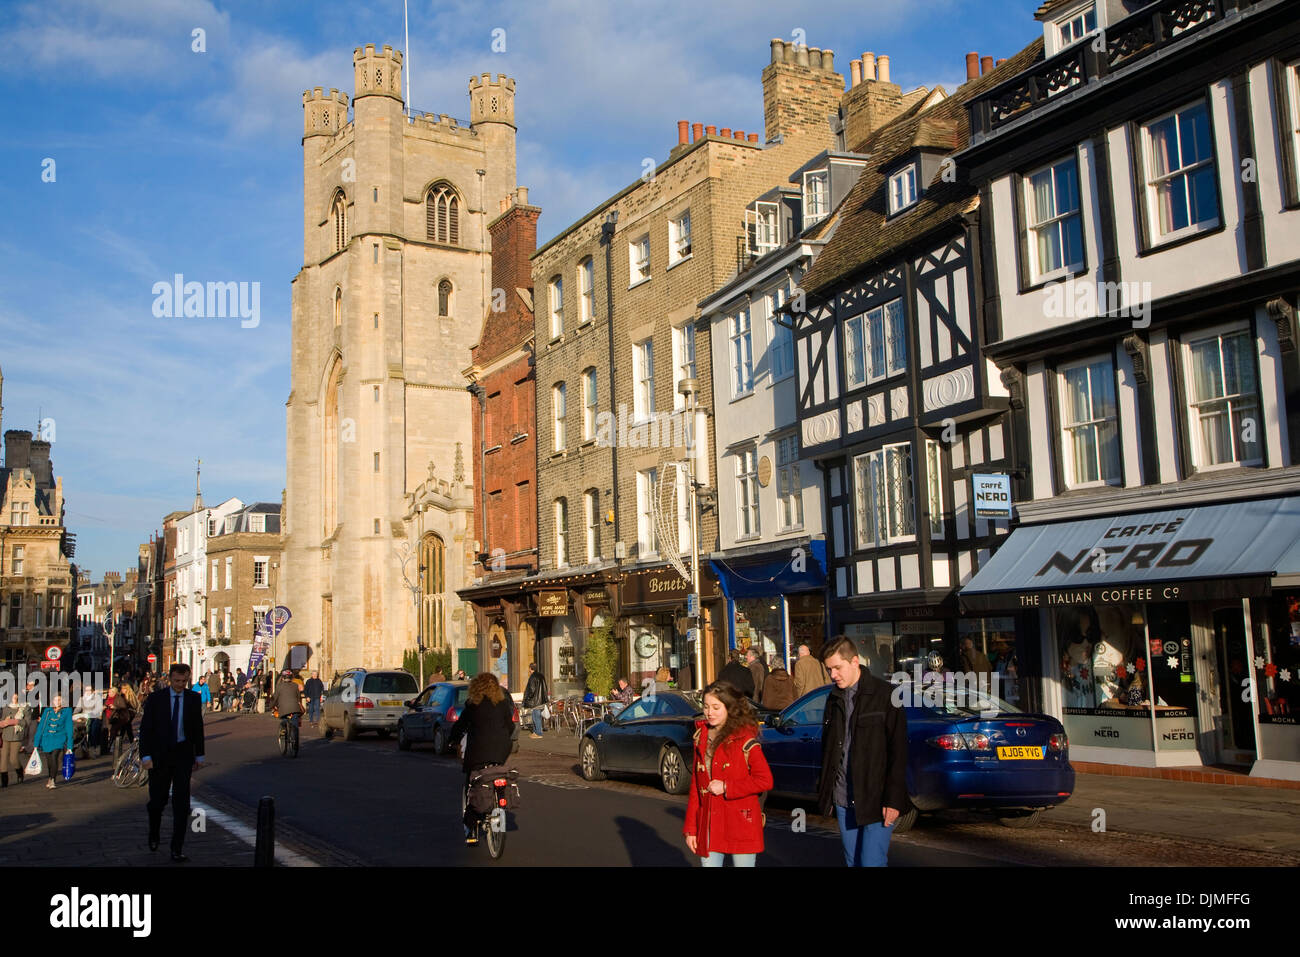 Great St Mary's church and historic buildings King's Parade, Cambridge, England - Stock Image